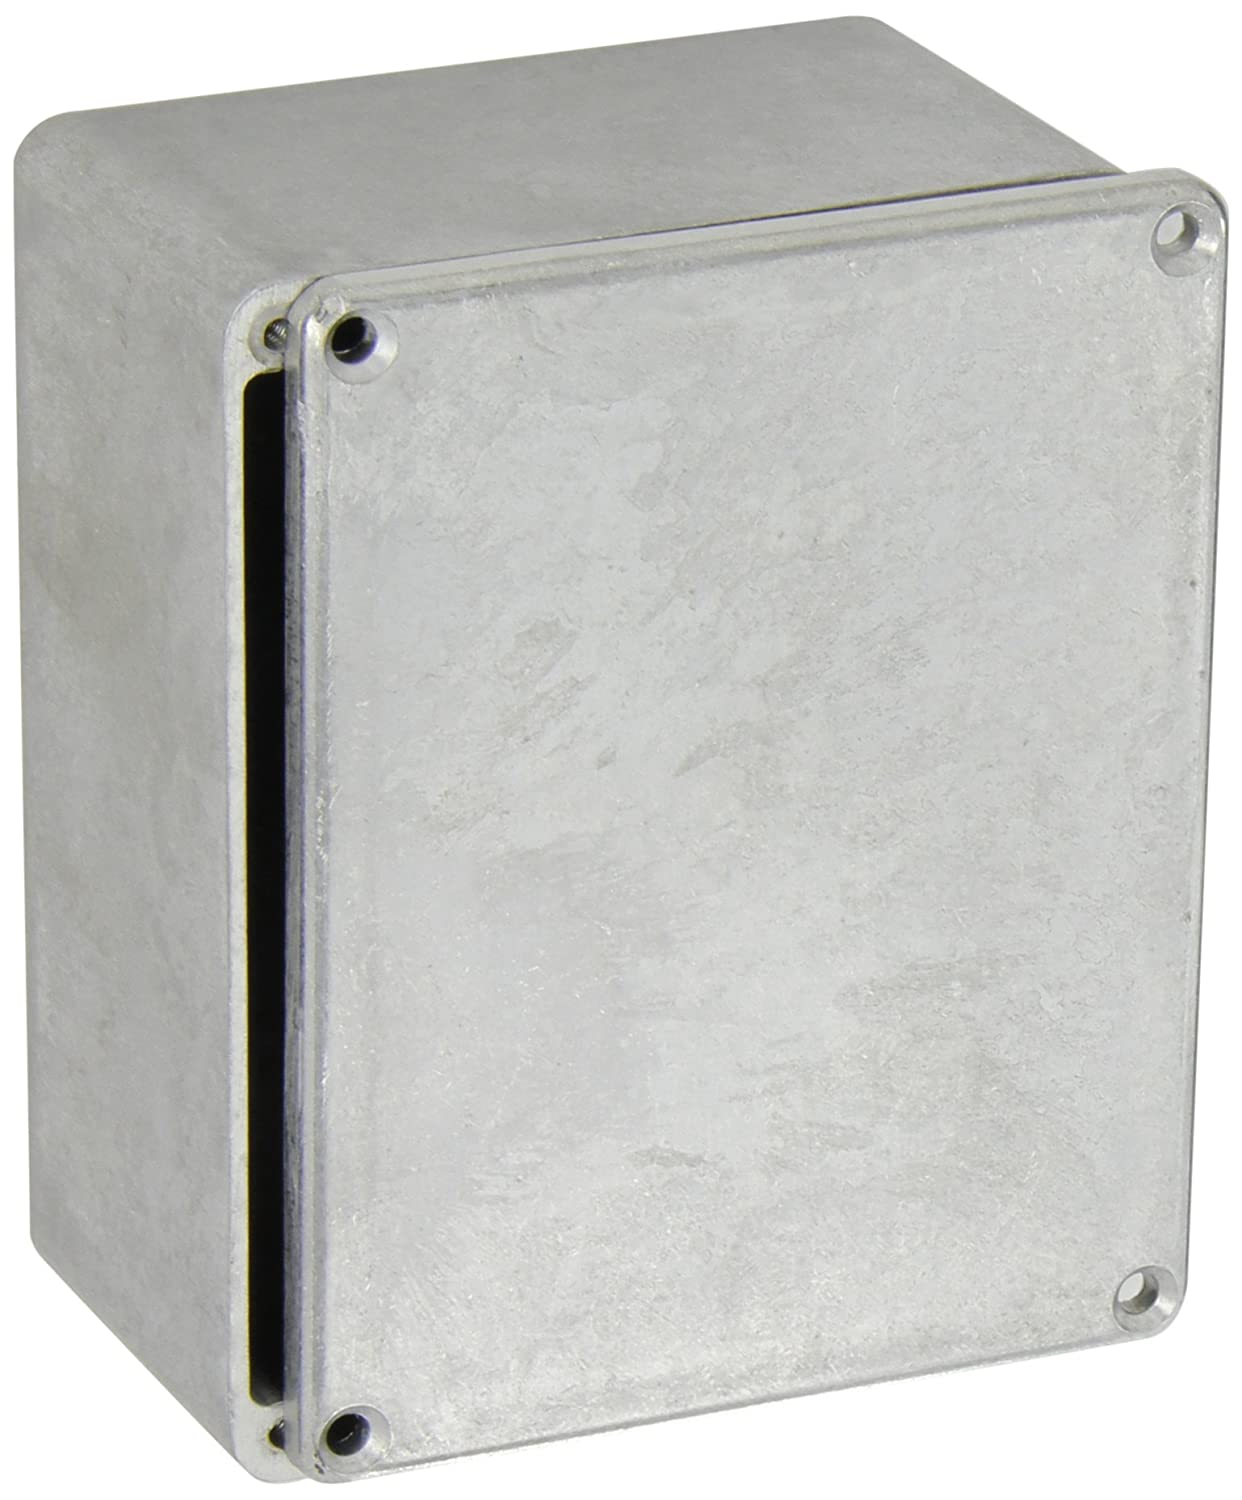 4-17//32 Length x 3-9//16 Width x 2-7//32 Height BUD Industries CN-5705 Die Cast Aluminum Enclosure Natural Finish 4-17//32 Length x 3-9//16 Width x 2-7//32 Height